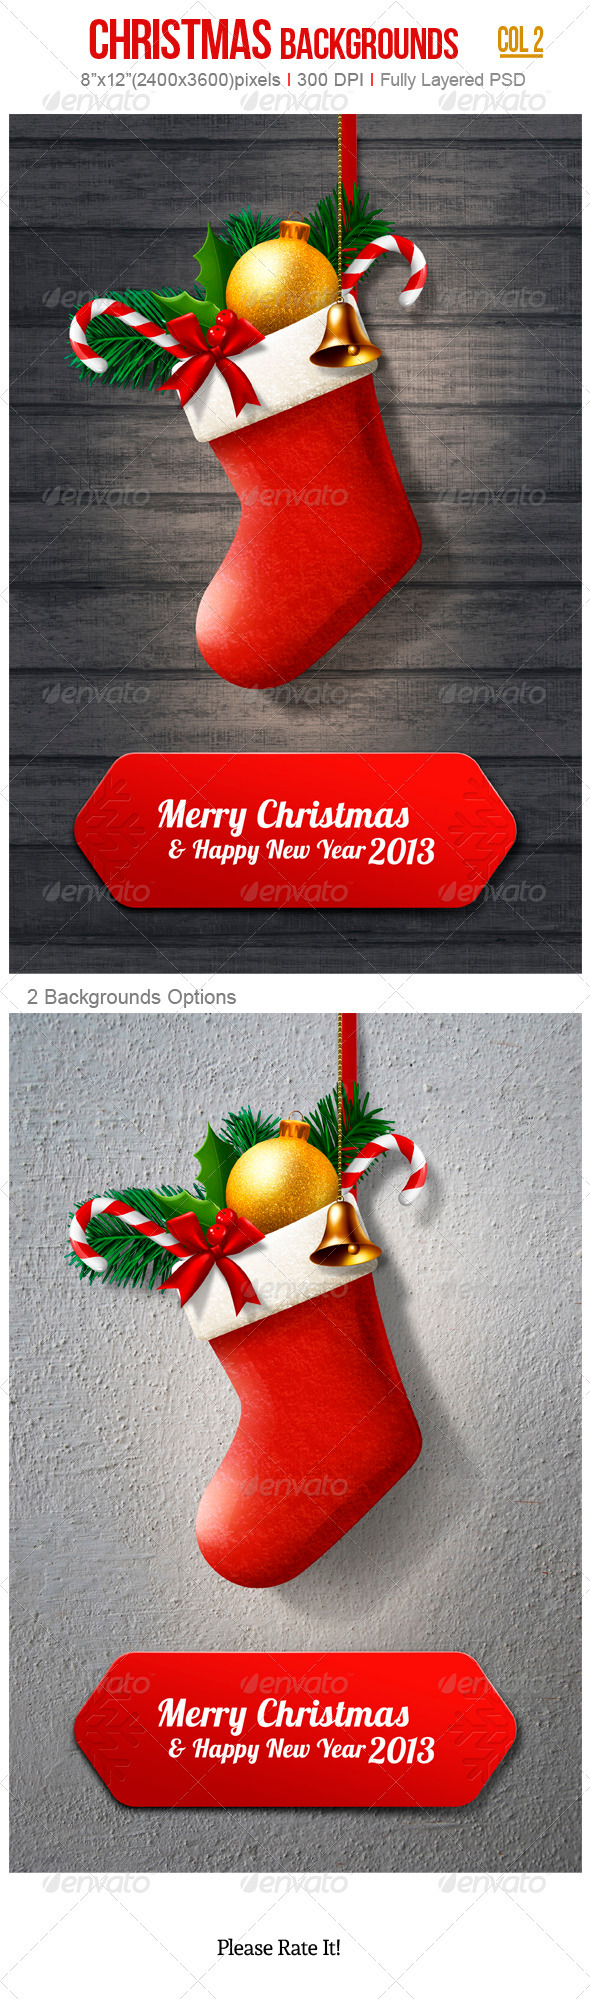 GraphicRiver Christmas Backgrounds 3409156